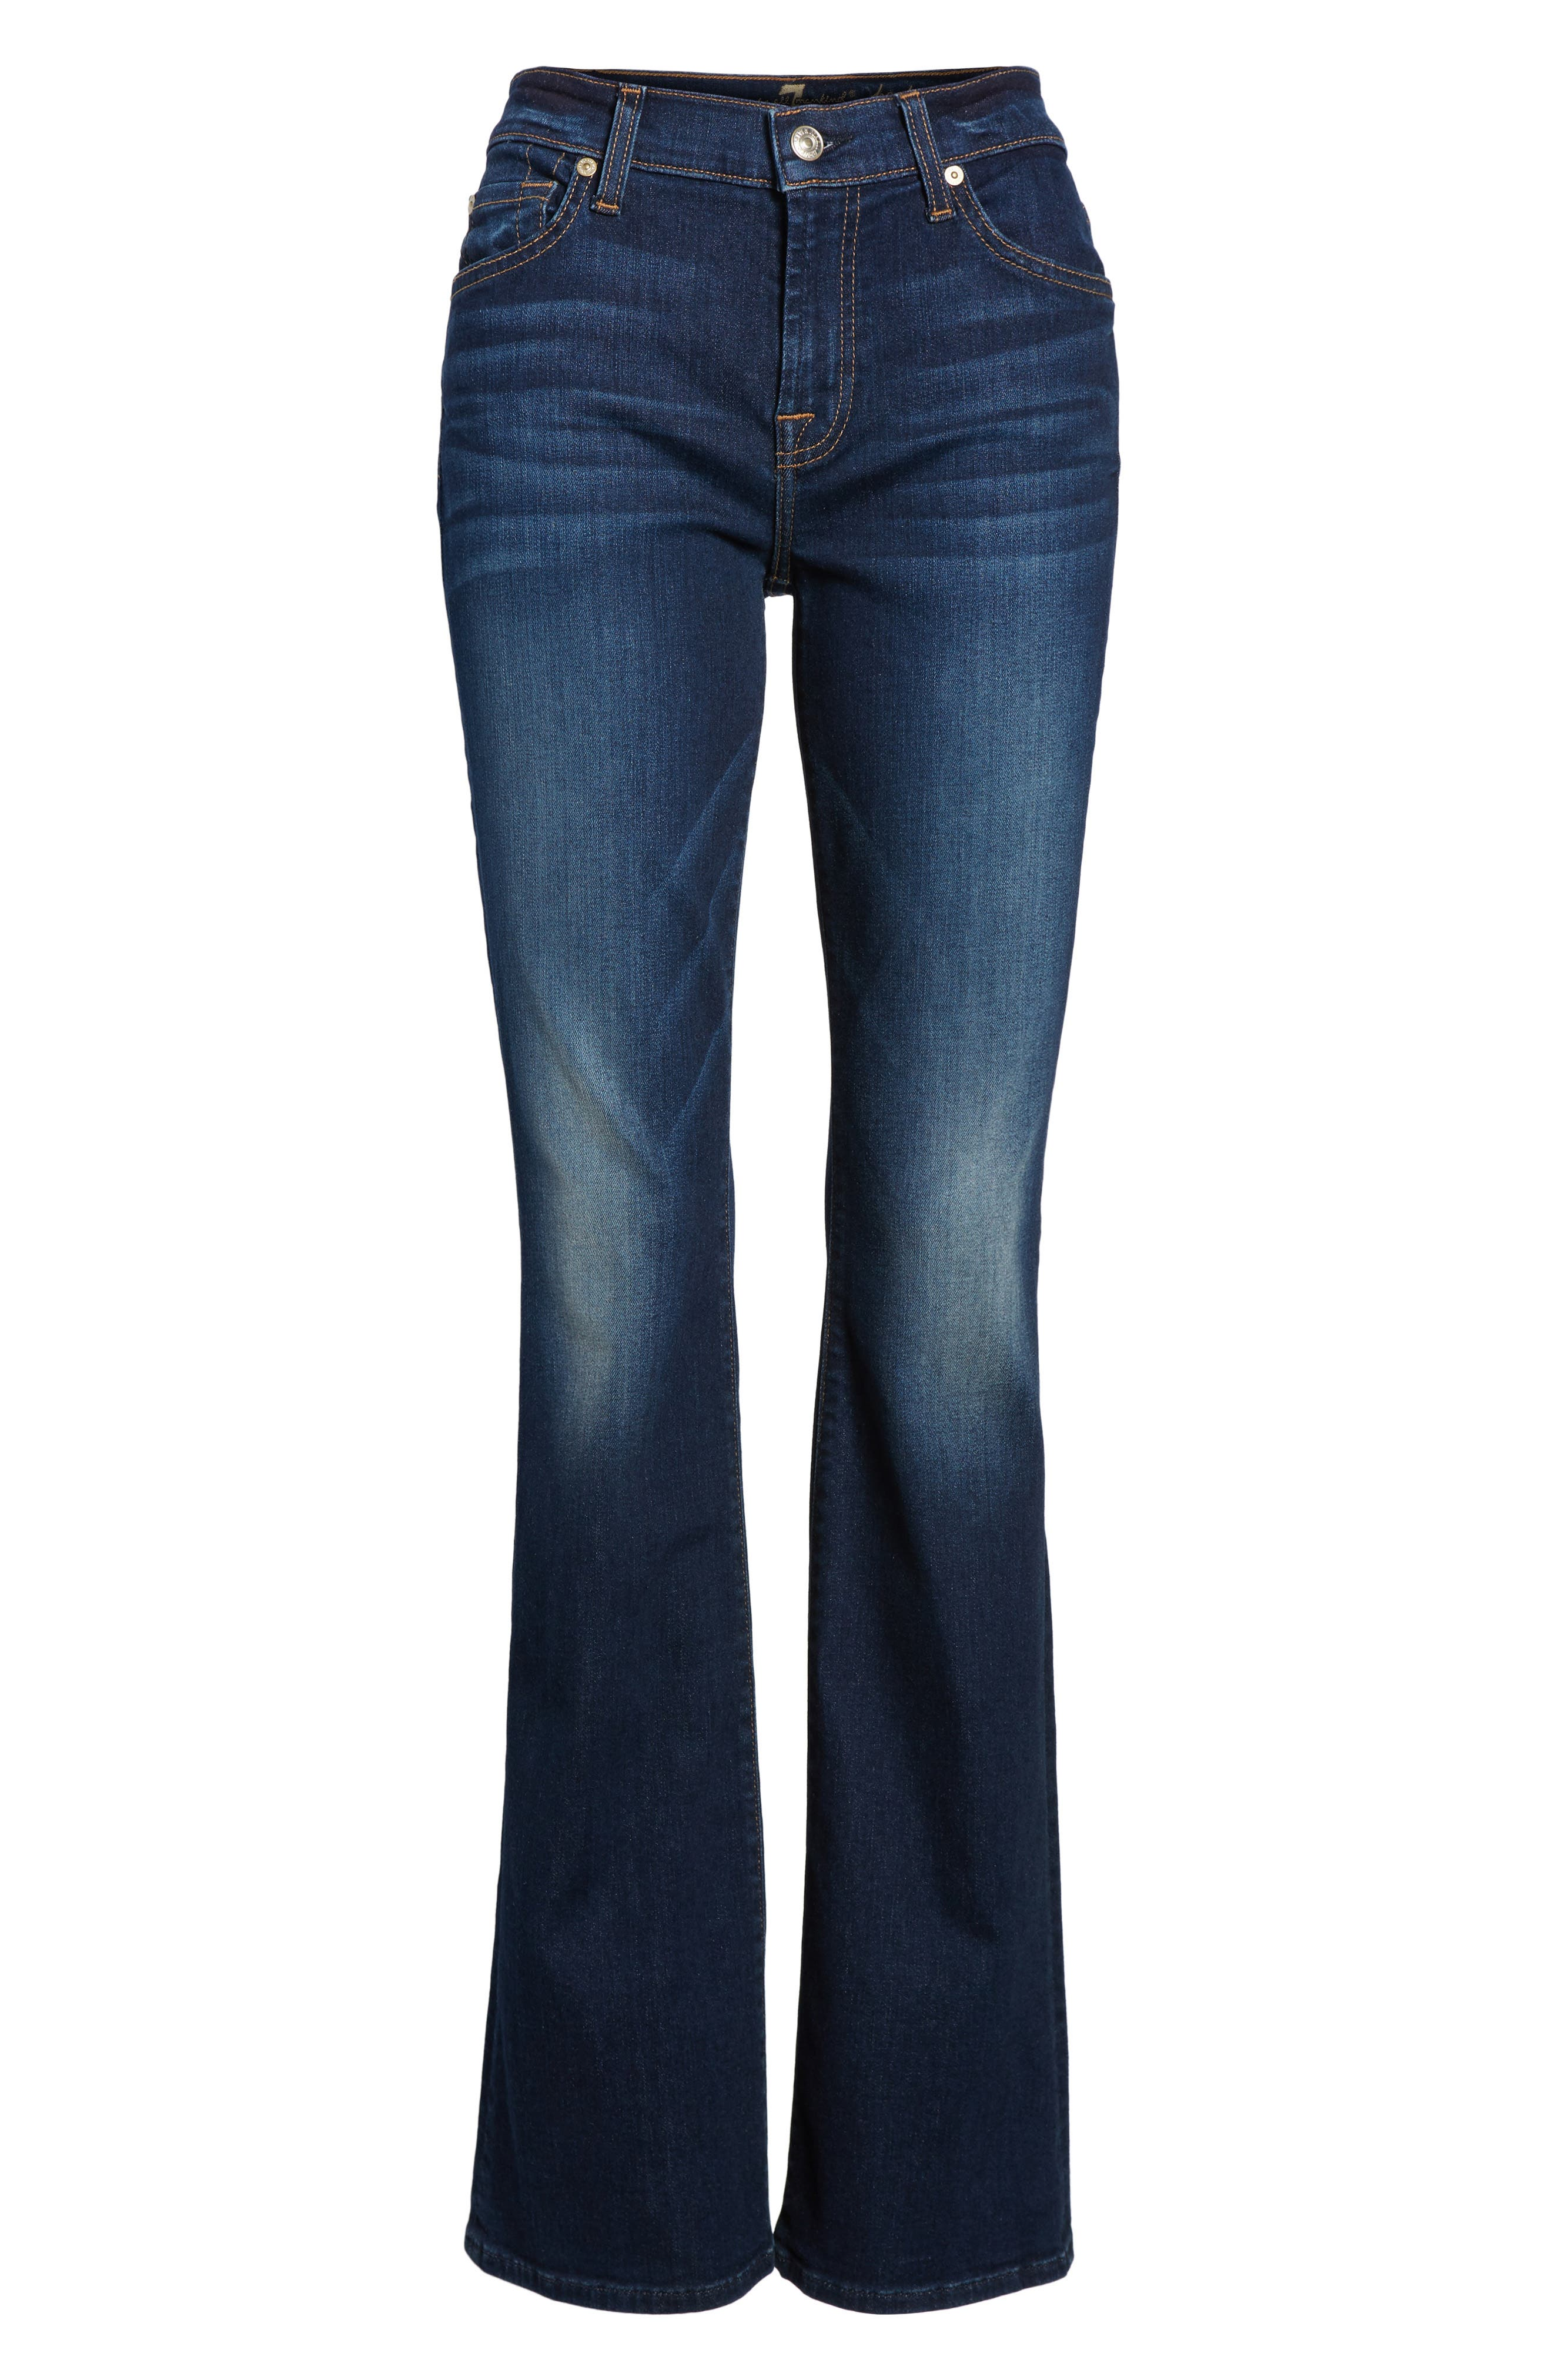 Tailorless Iconic Bootcut Jeans,                             Alternate thumbnail 6, color,                             Moreno